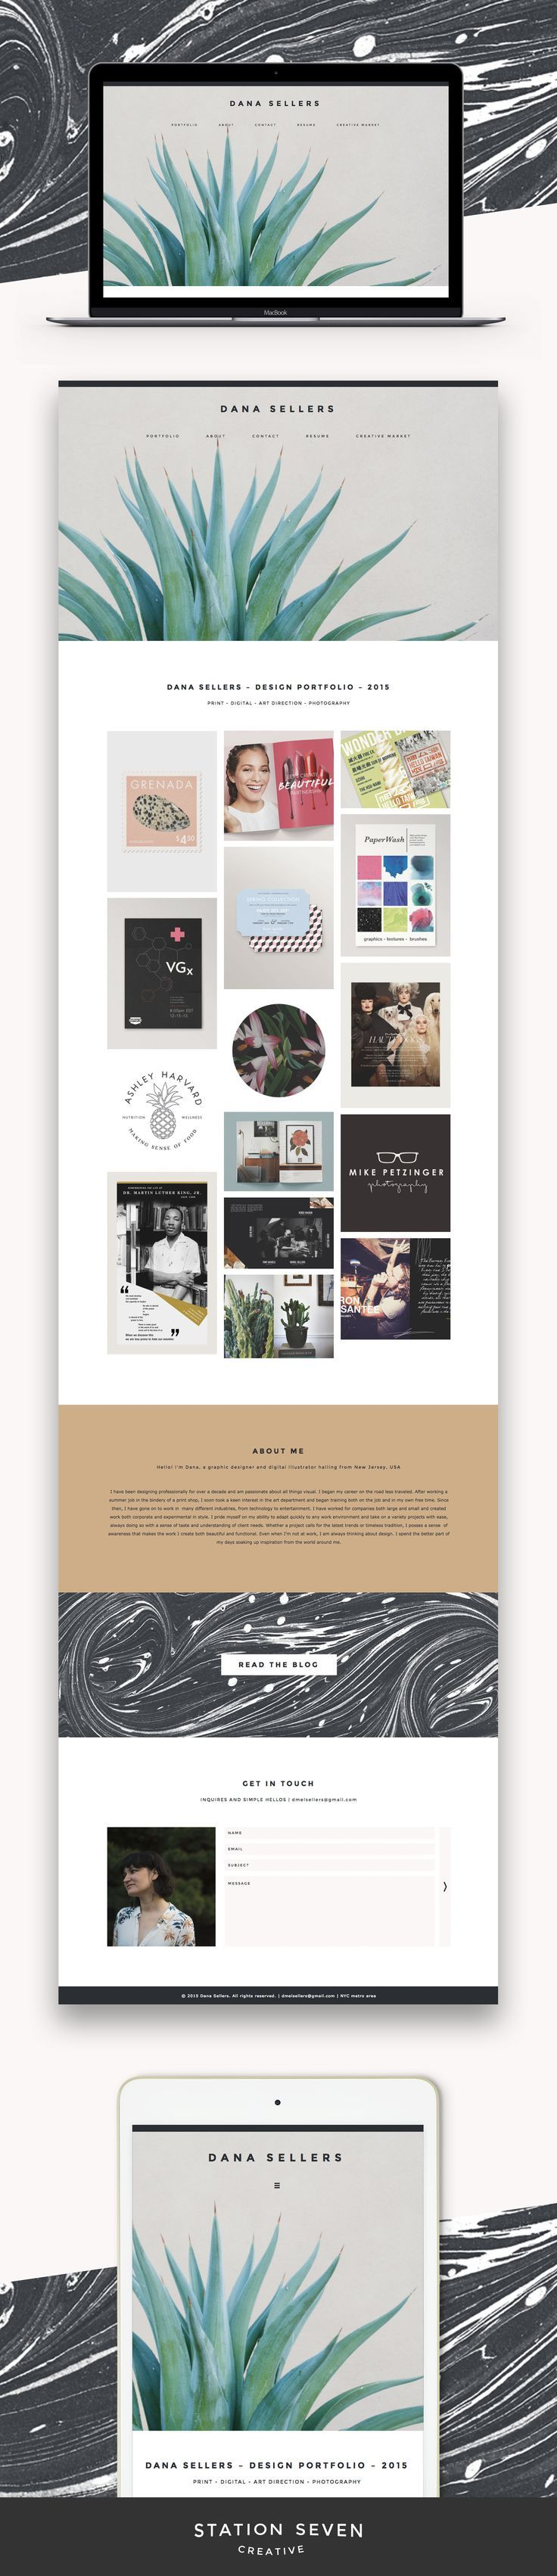 We love this modern and unique site by Dana Seller running on Station Seven's Industry WordPress theme.